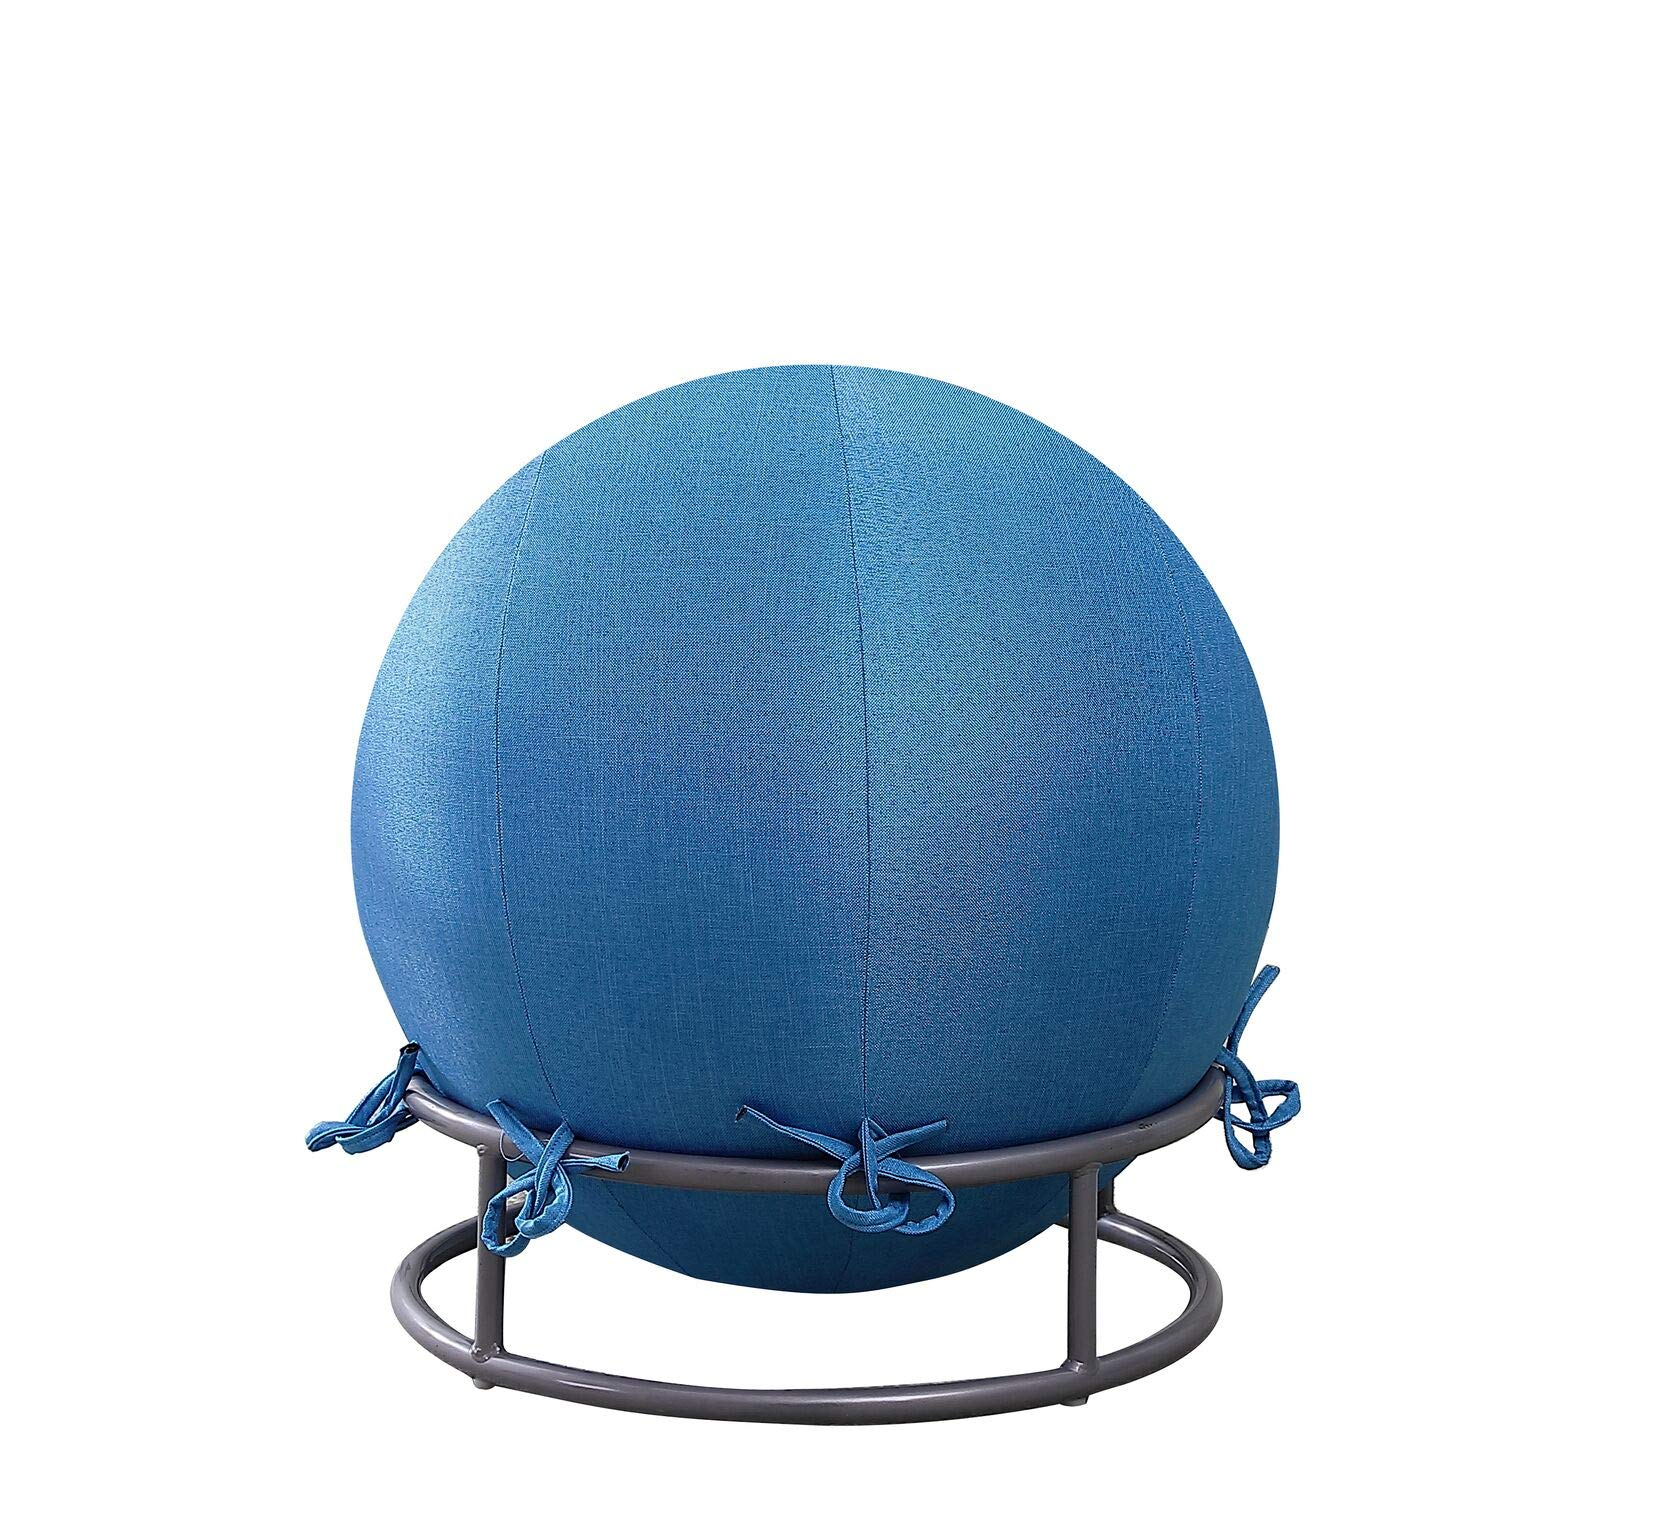 GoodGram Premium Posture Denim Fabric Yoga Exercise Balance Ball & Chair Set - Assorted Colors (Denim Blue)